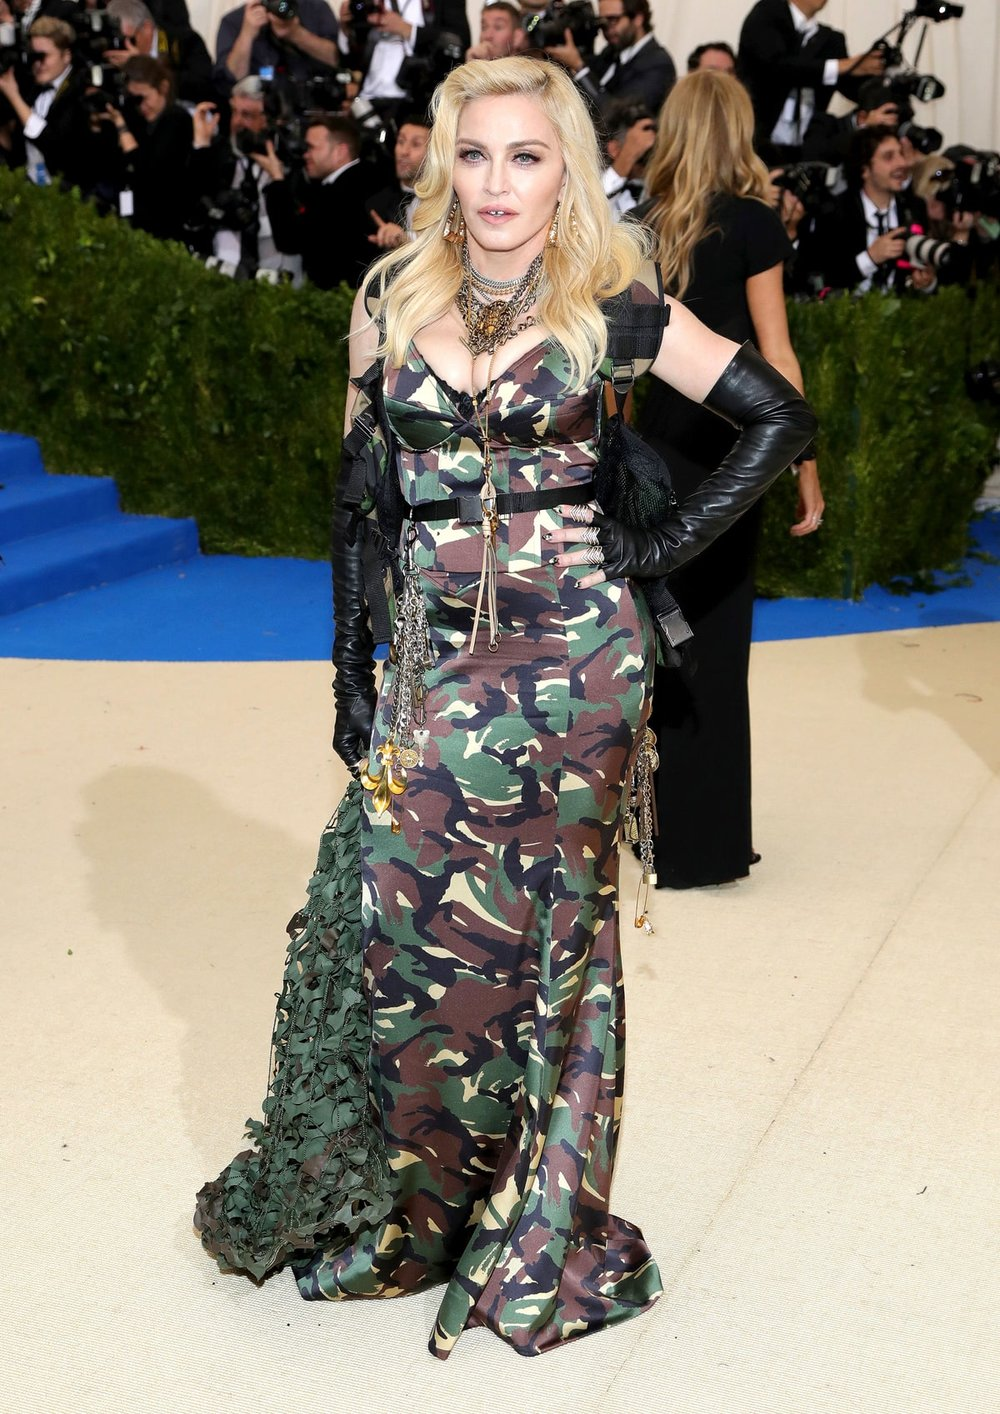 Madonna  in Moschino  . Madonna is the queen of tacky AF. Point proven with this military-inspired, basic training net adored messsssss honey. She could have lived without every single accessory she threw on with this too. At least she left the kitchen sink at home.